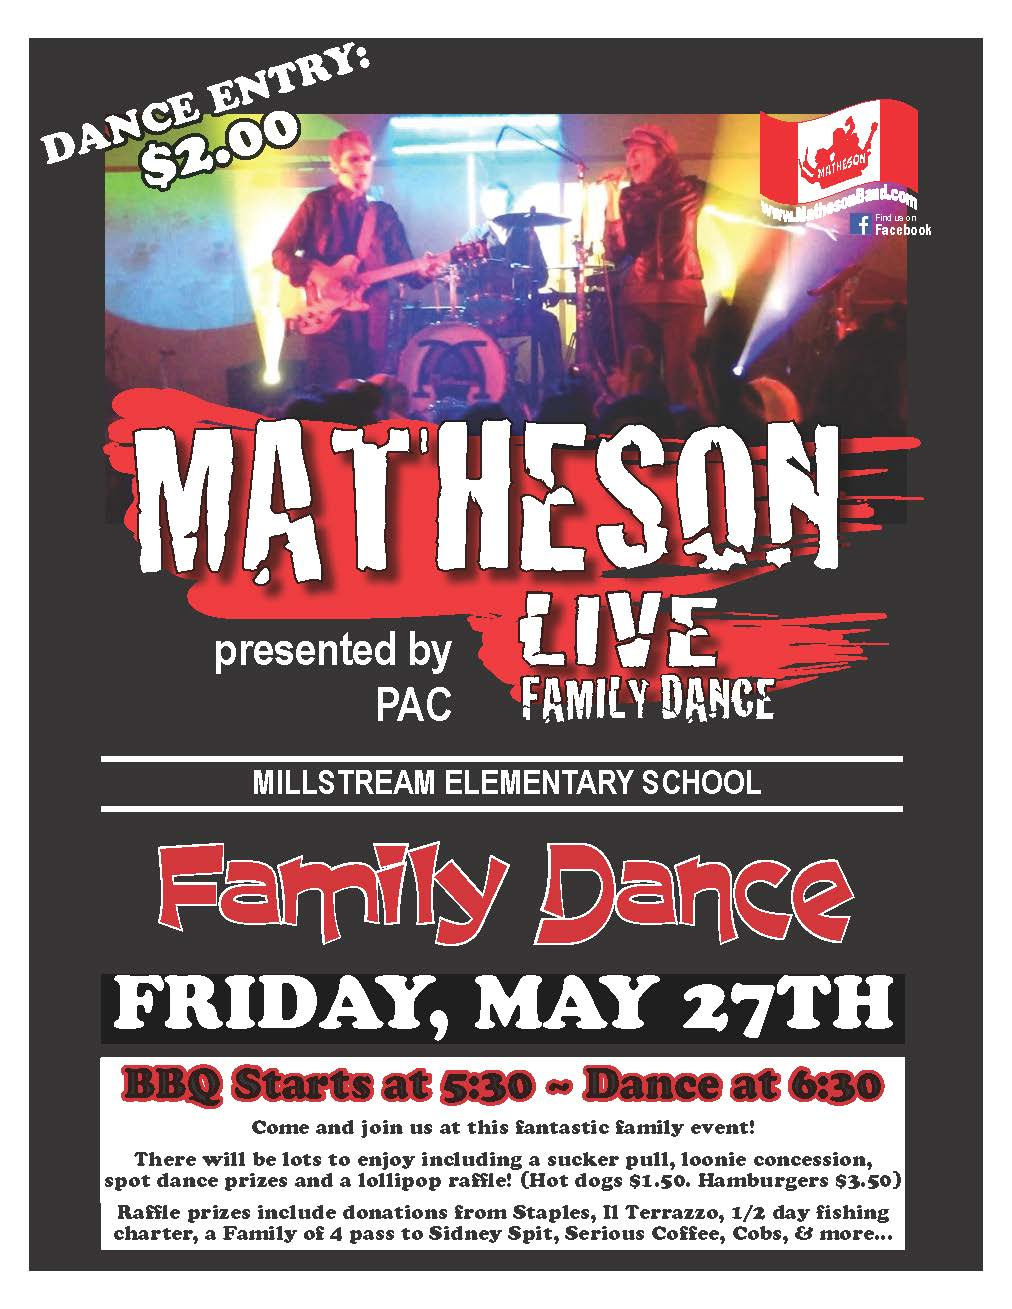 Metheson Live Family Dance - May 27, 2016